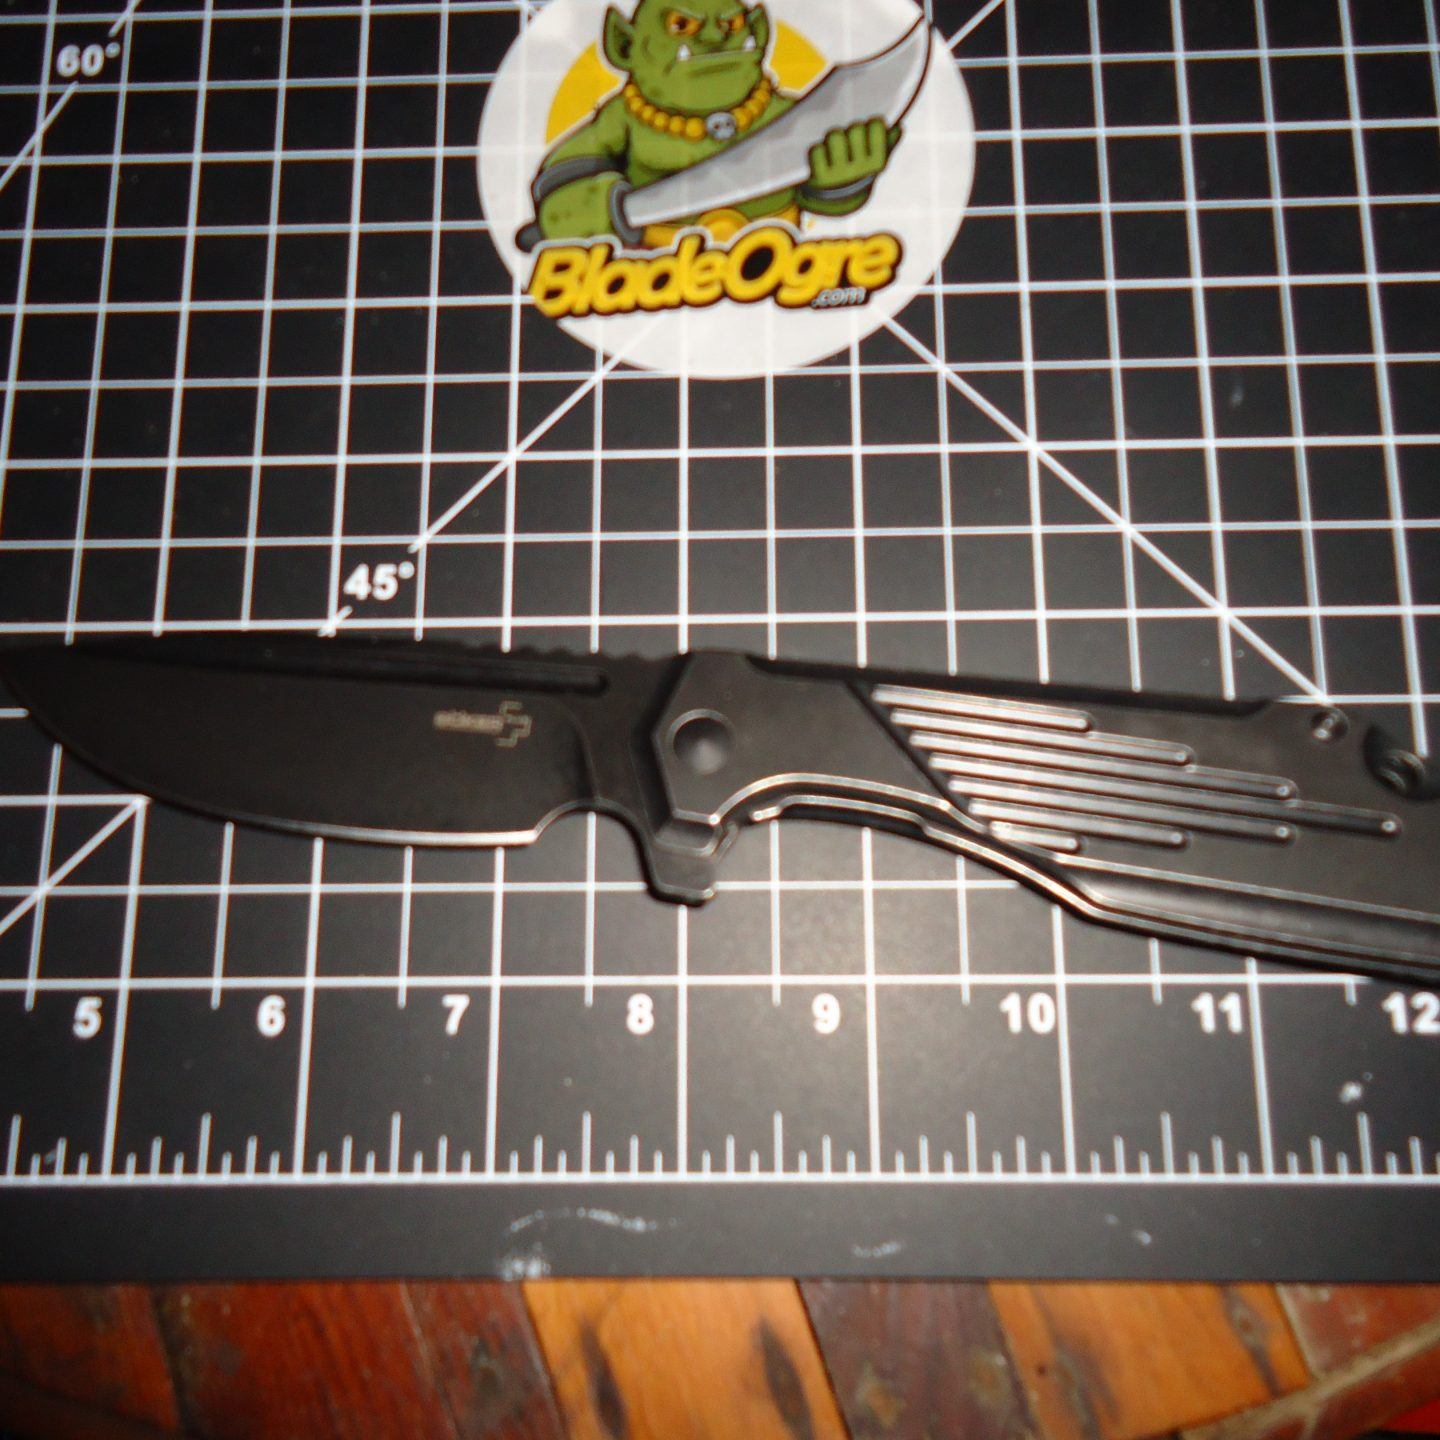 Boker Plus Knives at Buc-ees!